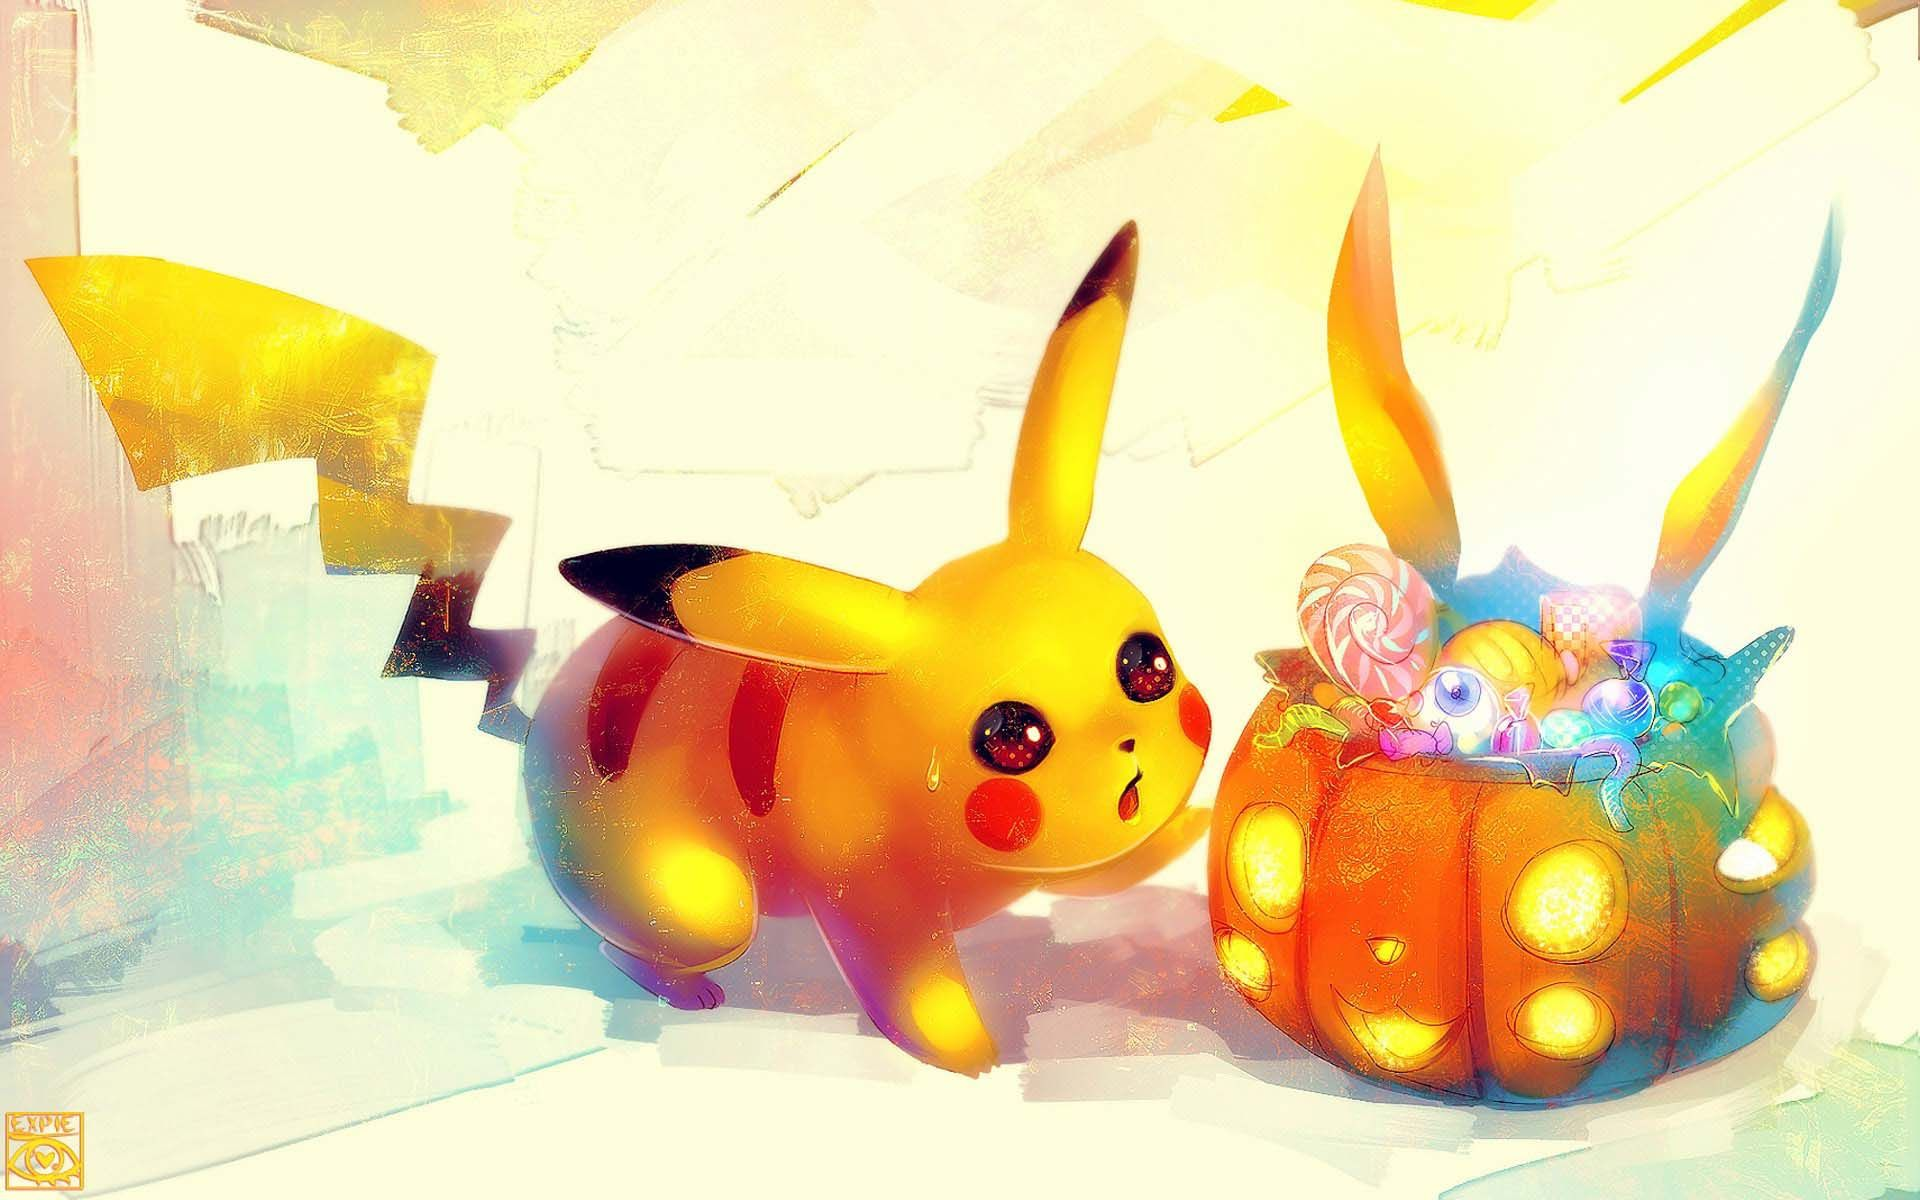 Great Wallpaper Halloween Pokemon - c1c39a6a0ee650224c62fdd9b78bde9f  Best Photo Reference_457442.jpg